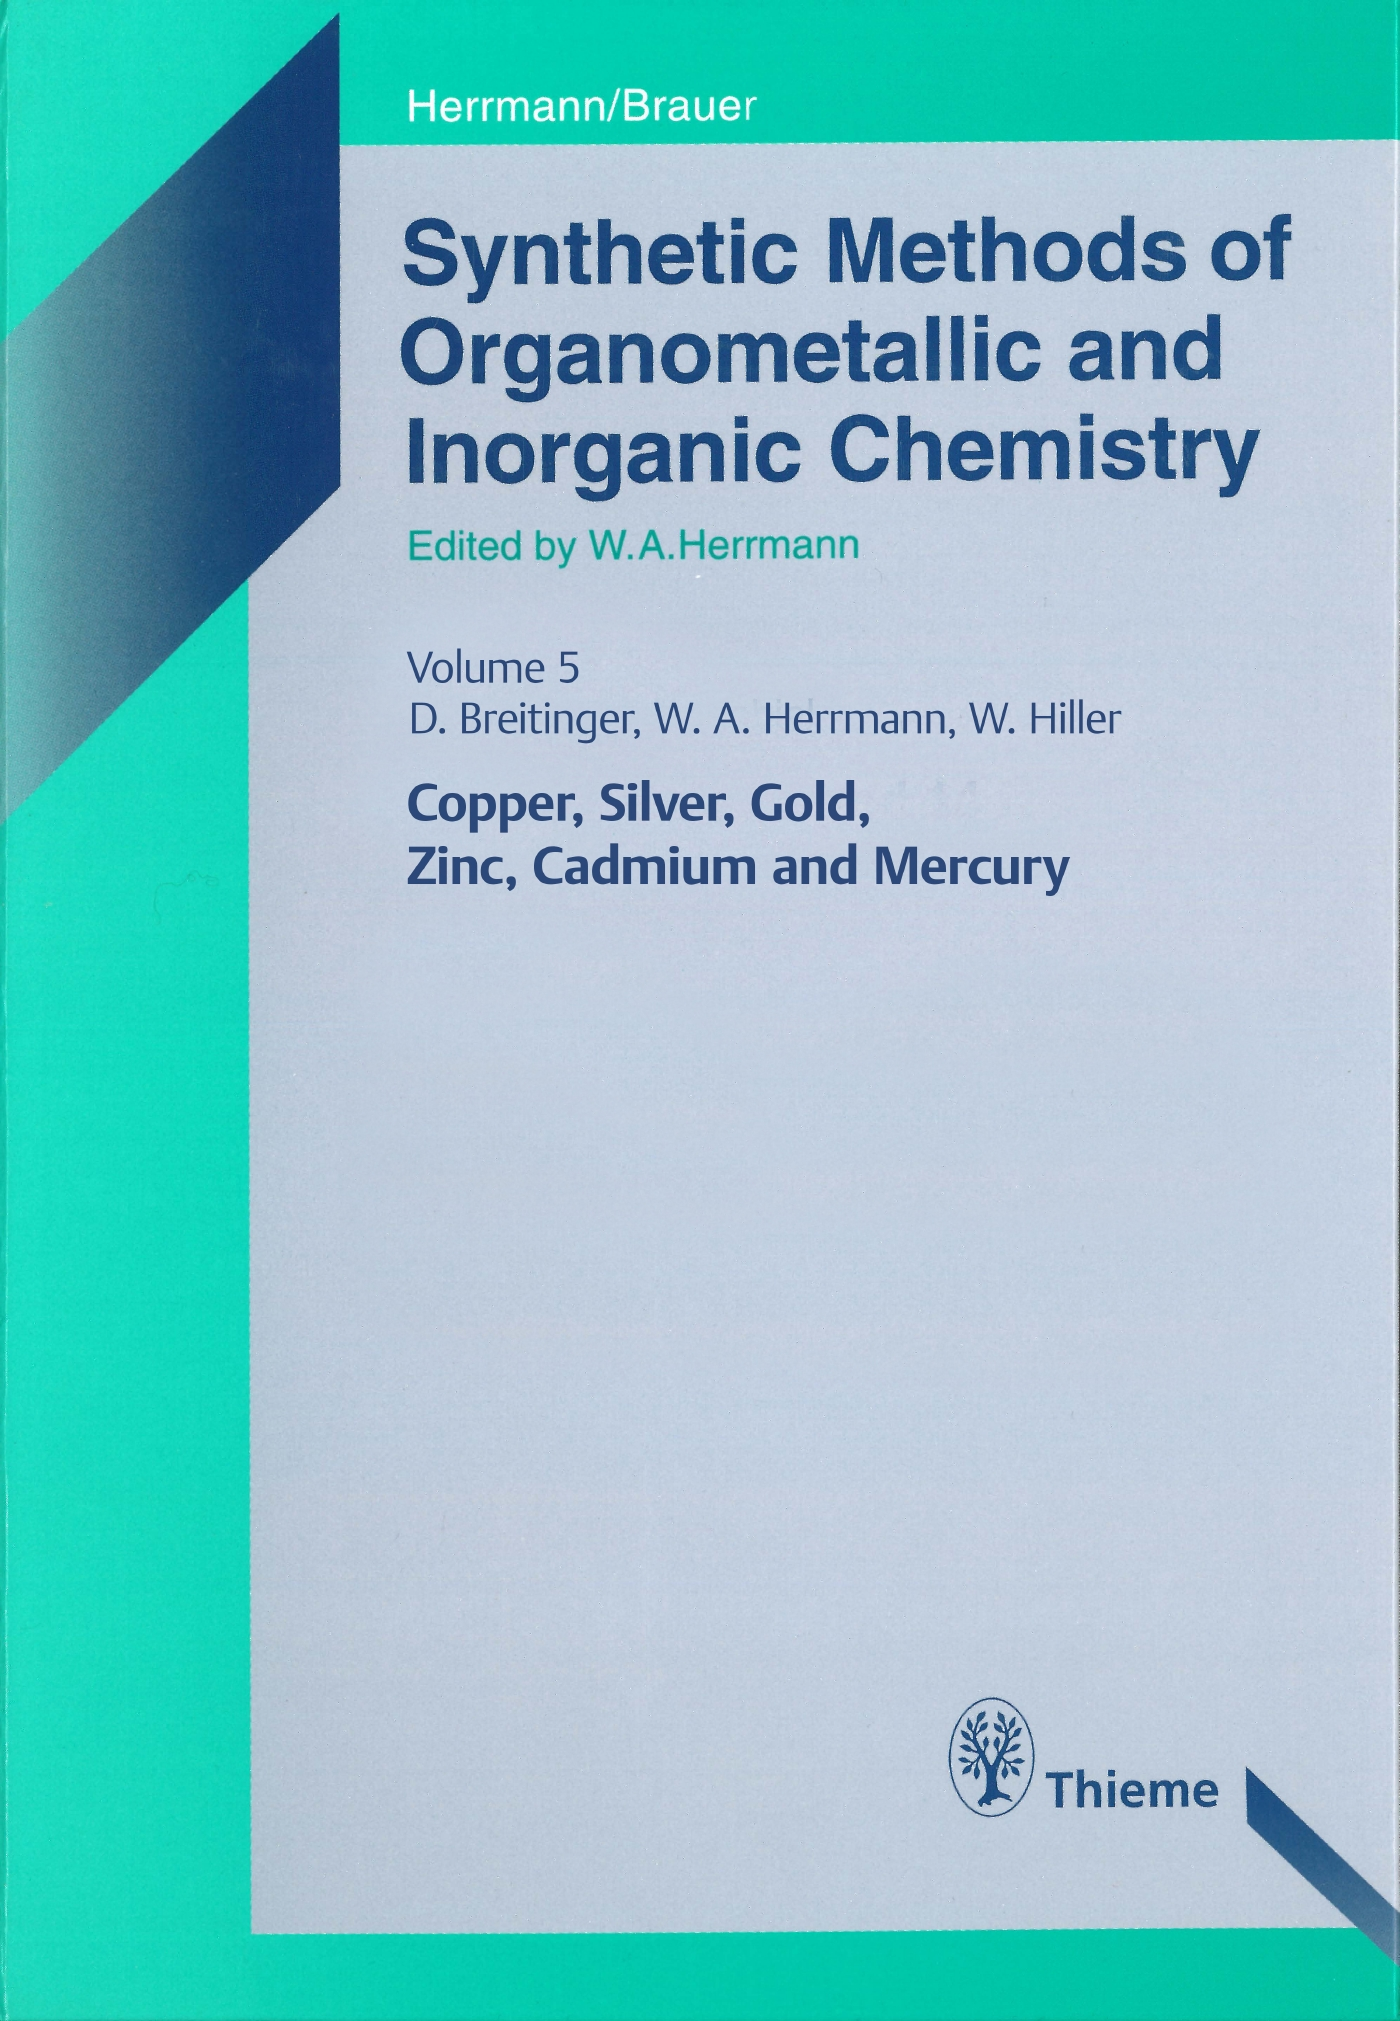 Synthetic Methods of Organometallic and Inorganic Chemistry, Volume 5, 1999